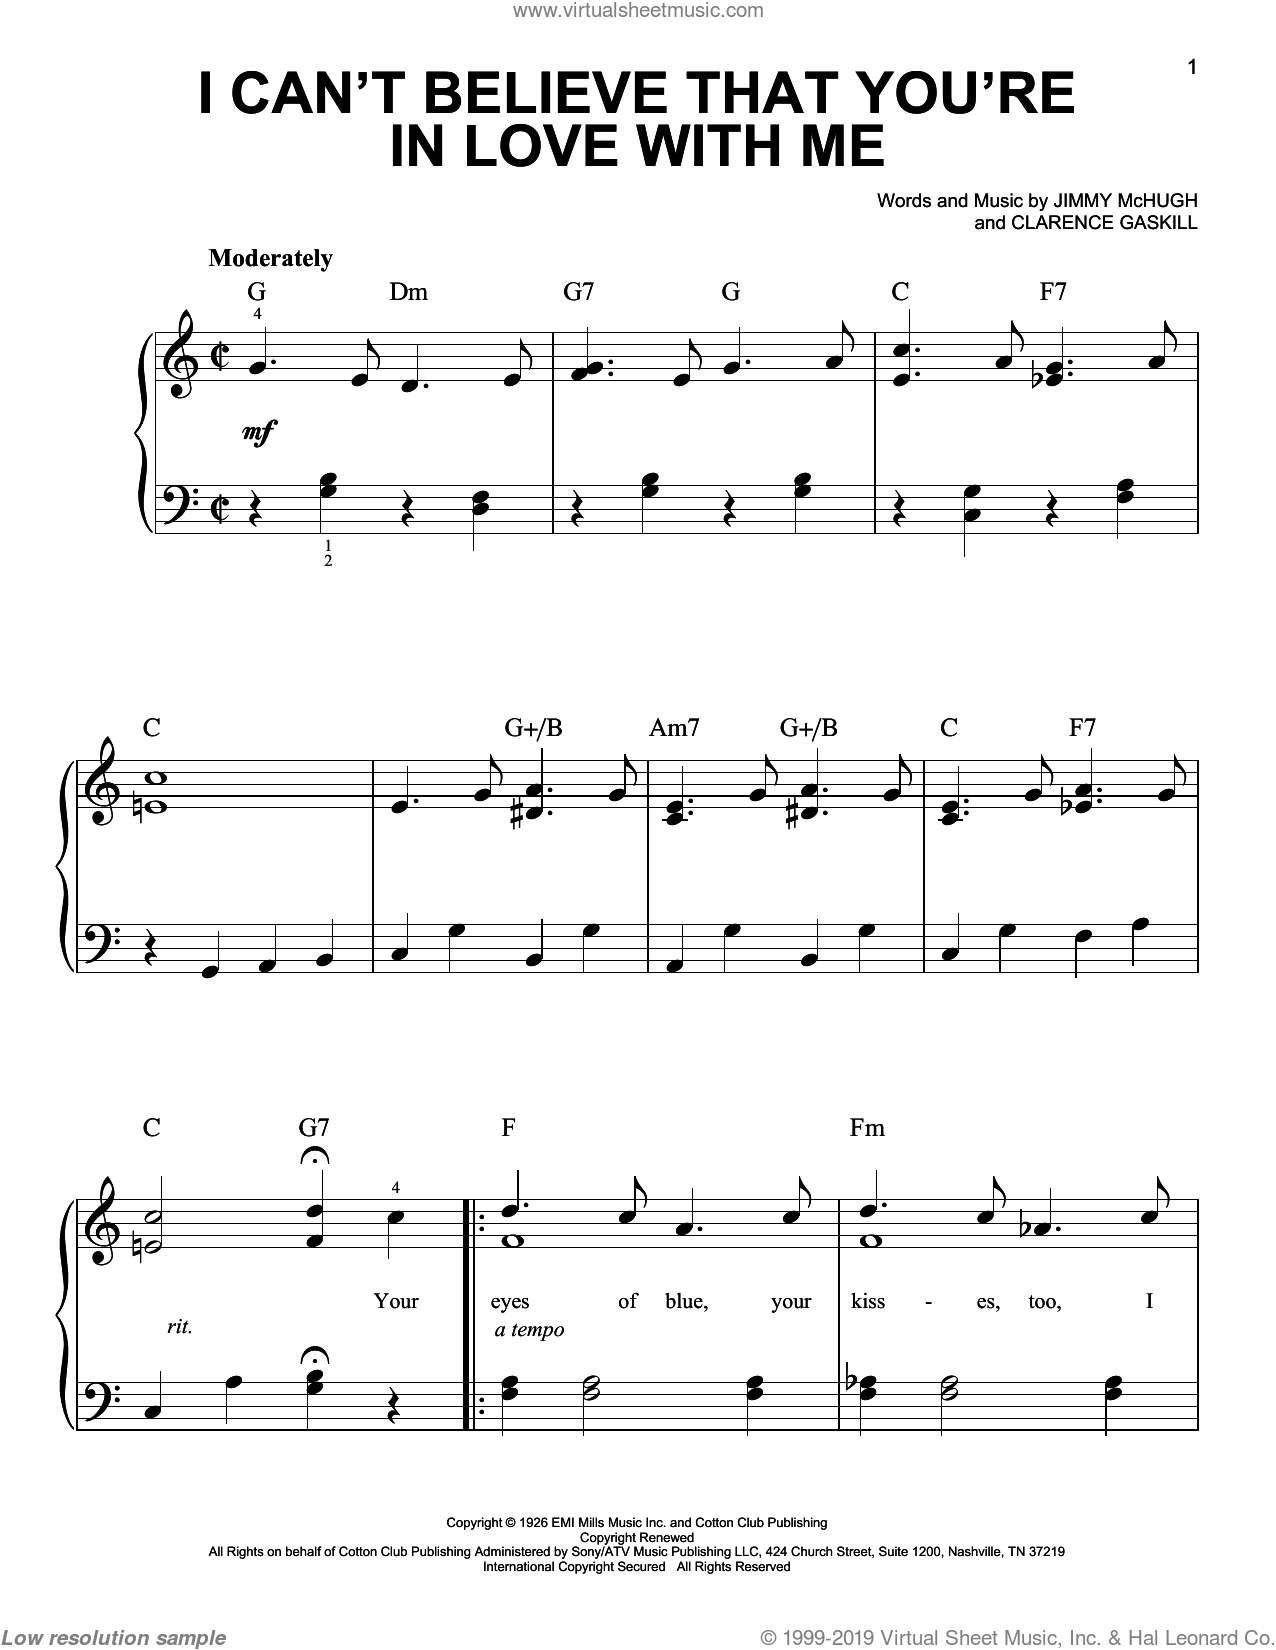 I Can't Believe That You're In Love With Me sheet music for piano solo by Jimmy McHugh and Clarence Gaskill, easy skill level